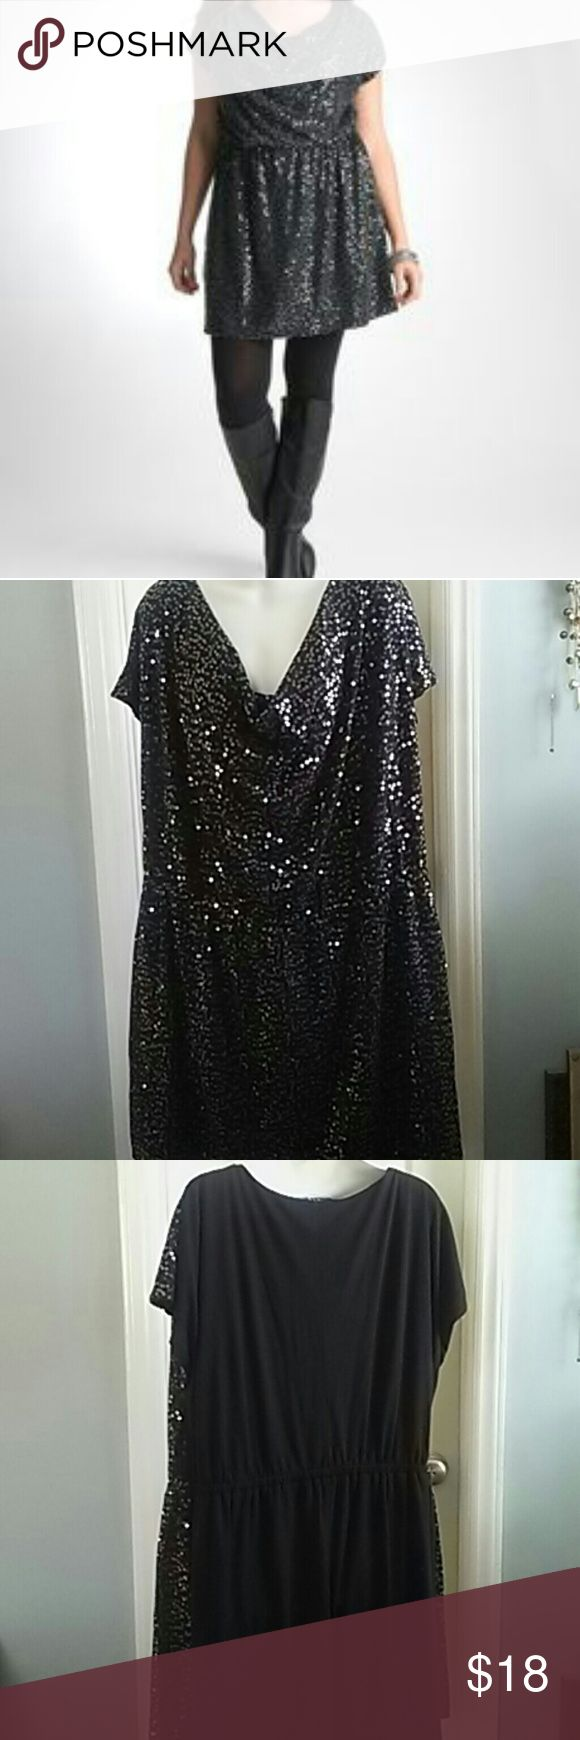 Plus size black sequin tunic/dress Beautiful cowl neck tunic/dress with sequined front. Back is plain. Elastic at waist. Soft jersey knit fabric. Lined. Perfect with leggings and boots. Great condition. Lane Bryant 22/24 Lane Bryant Dresses